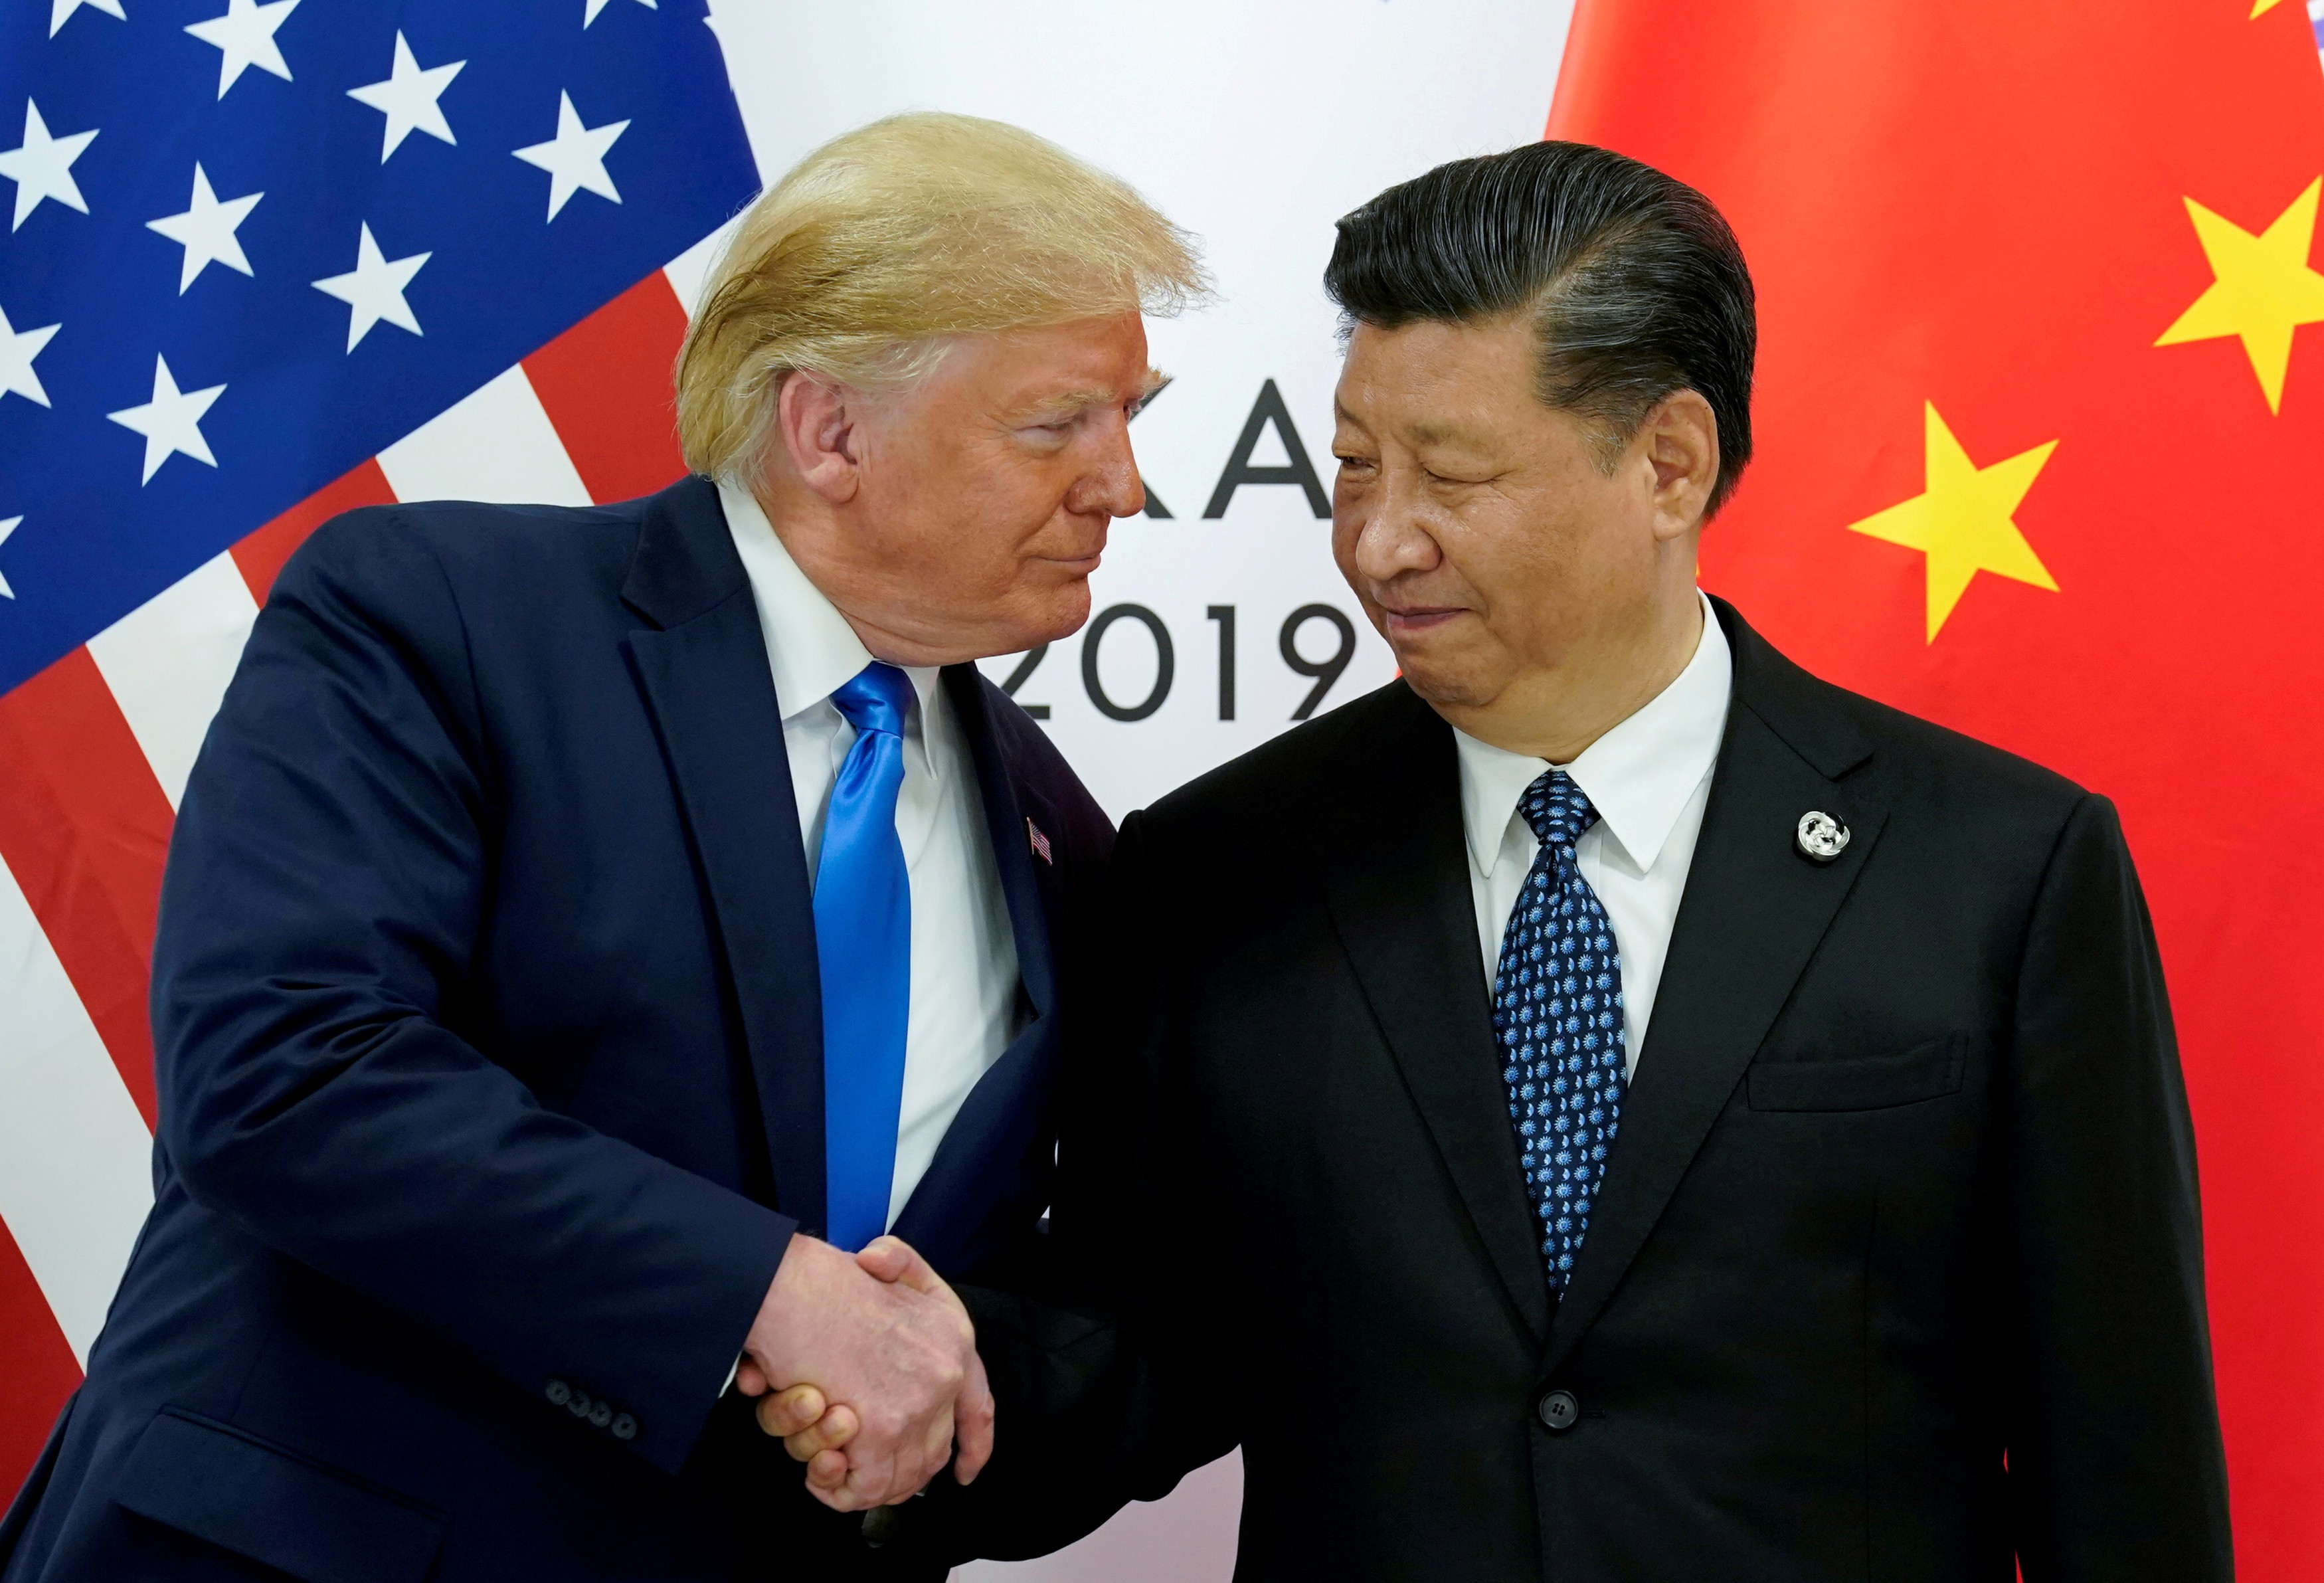 Trump signs off on deal to ease China trade war - The Washington Post